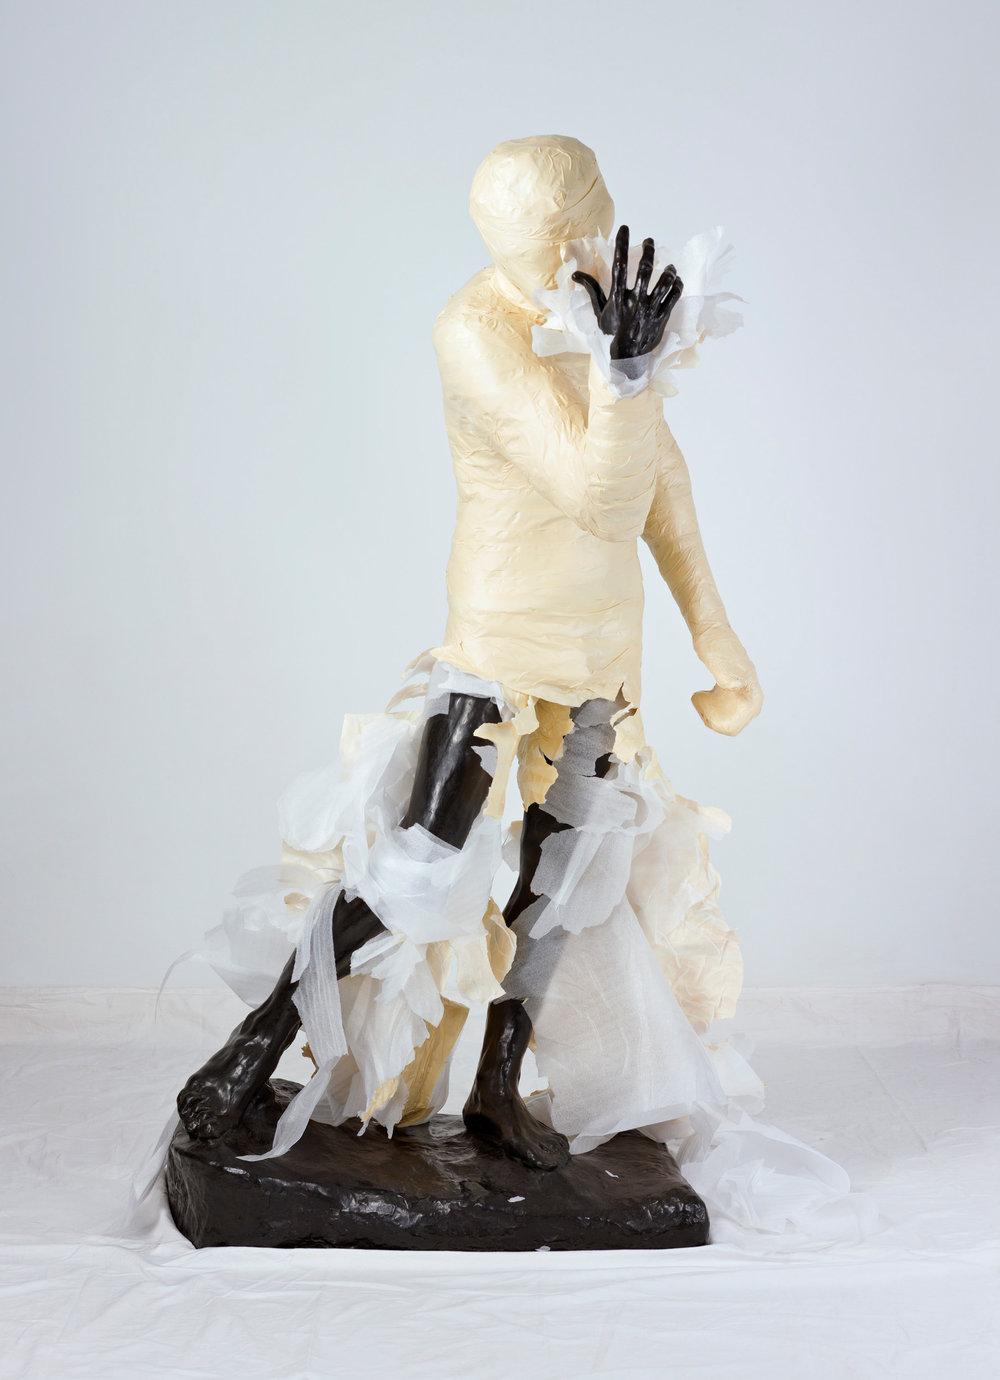 Unwrapping Rodin (White) 4   2010, colour photograph 127 x 175 cm / 50 x 69 in. Edition of 2